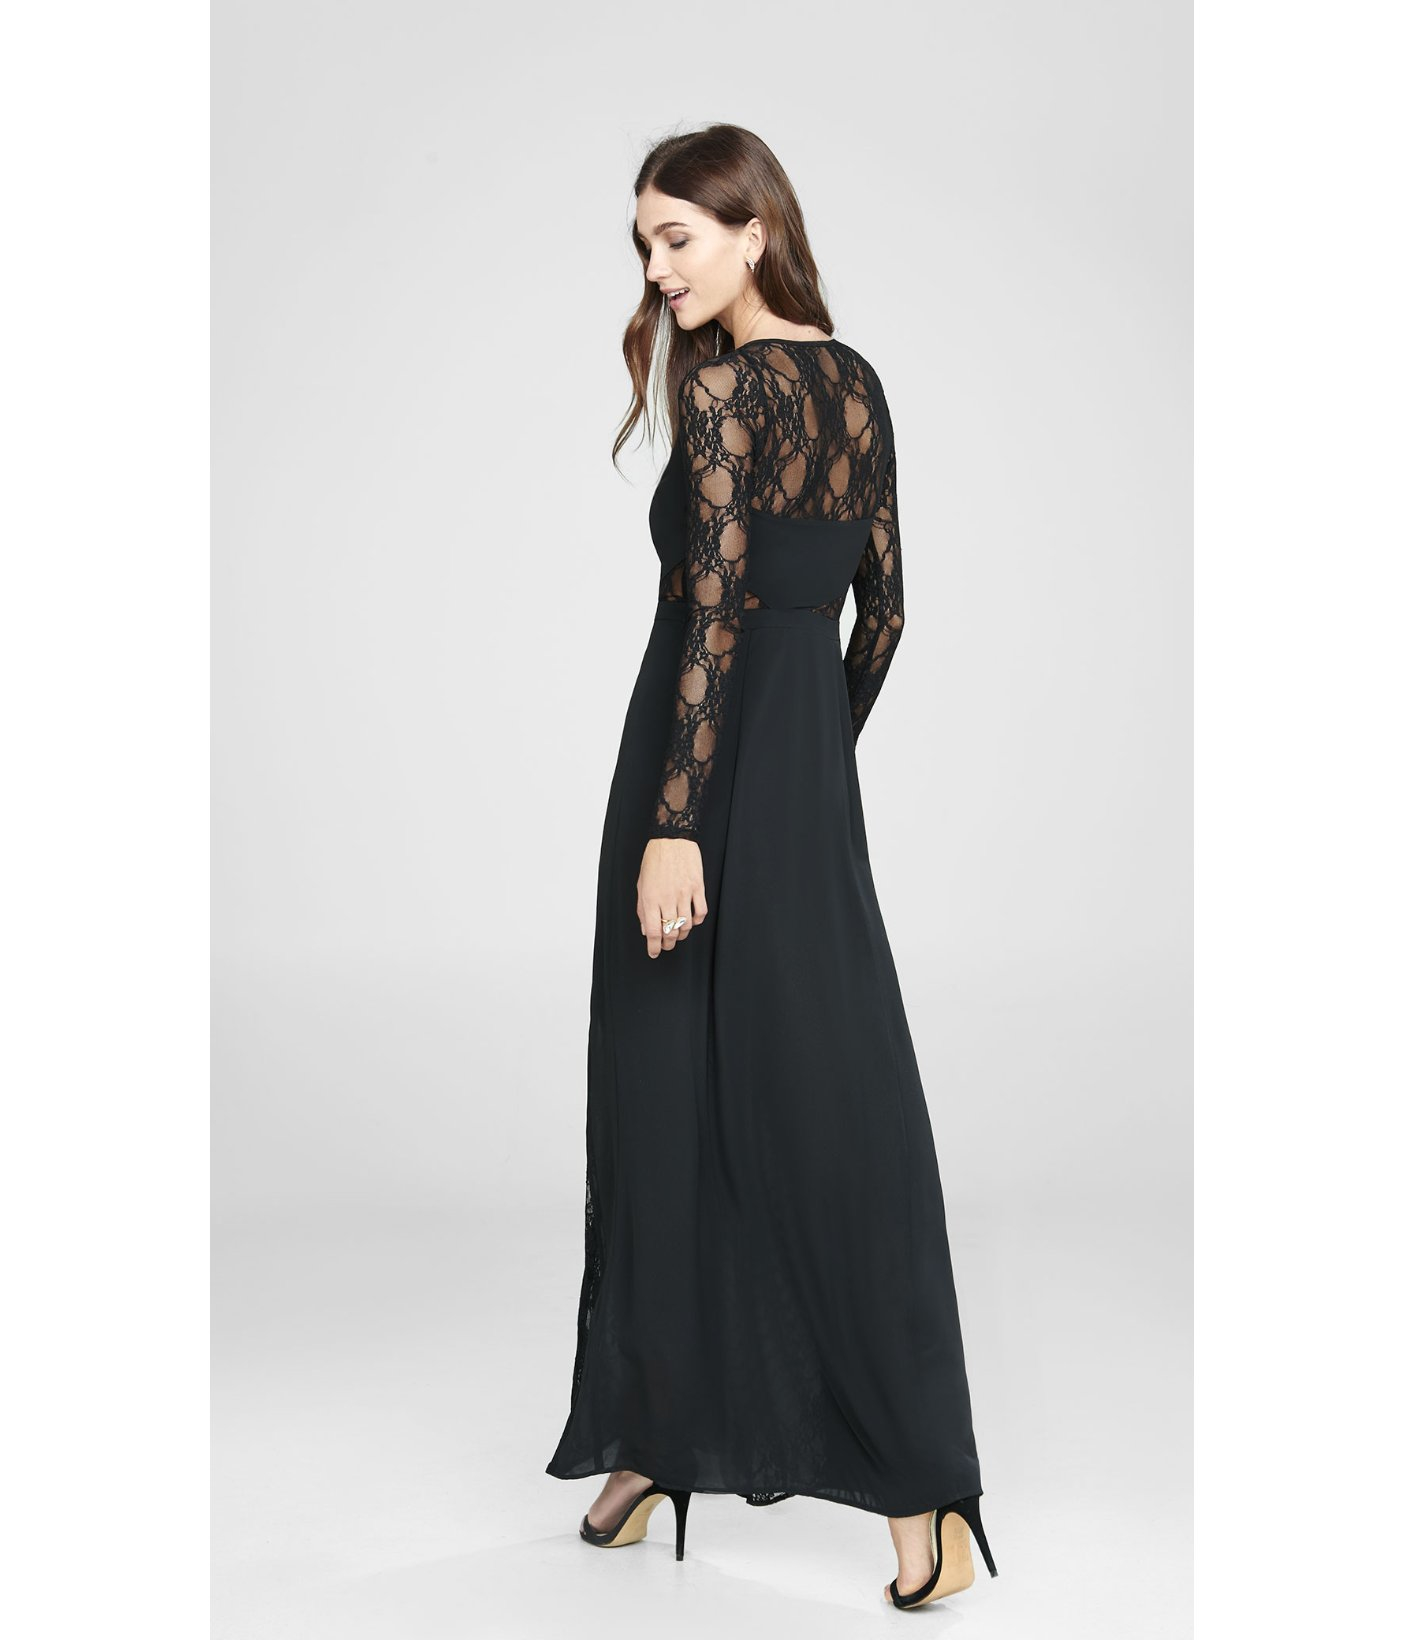 Long dress express clothing